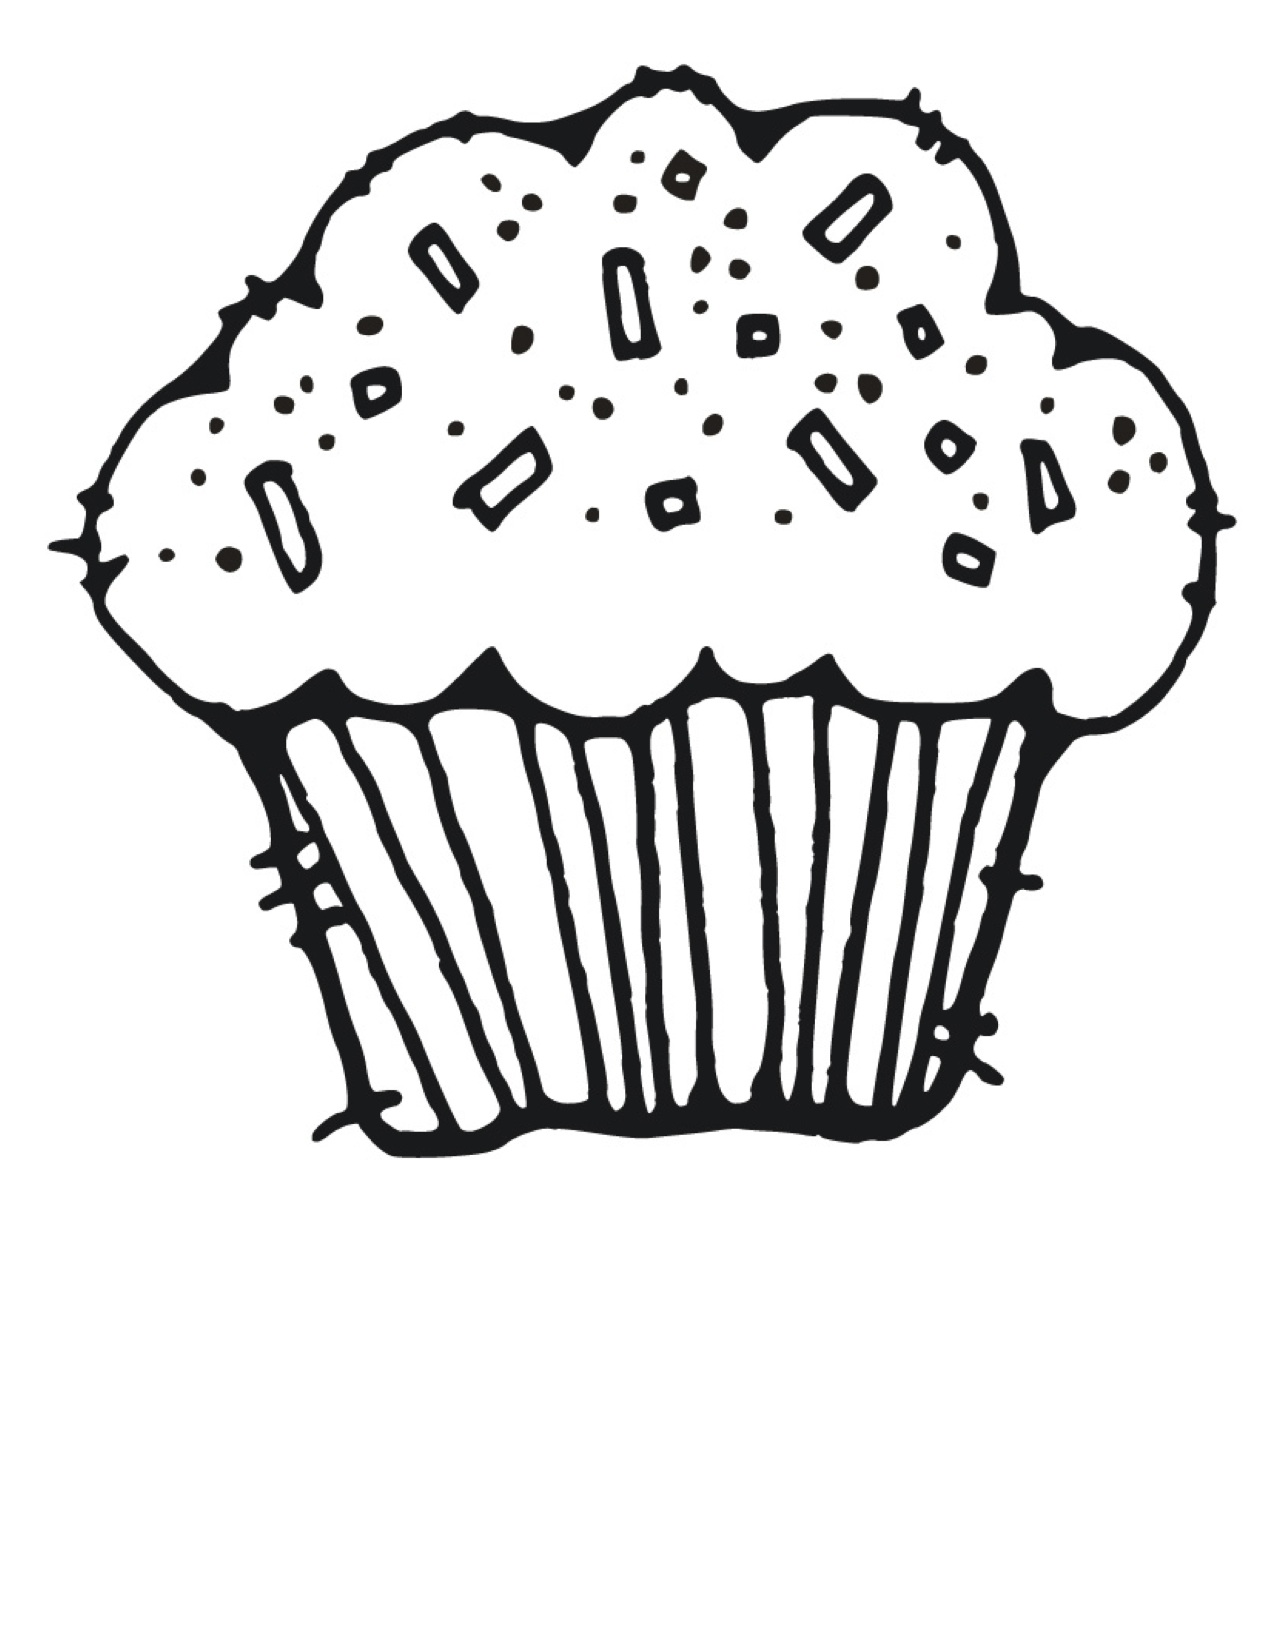 Cupcake clipart free black and white png royalty free download Best Cupcake Clipart Black And White #5197 - Clipartion.com png royalty free download